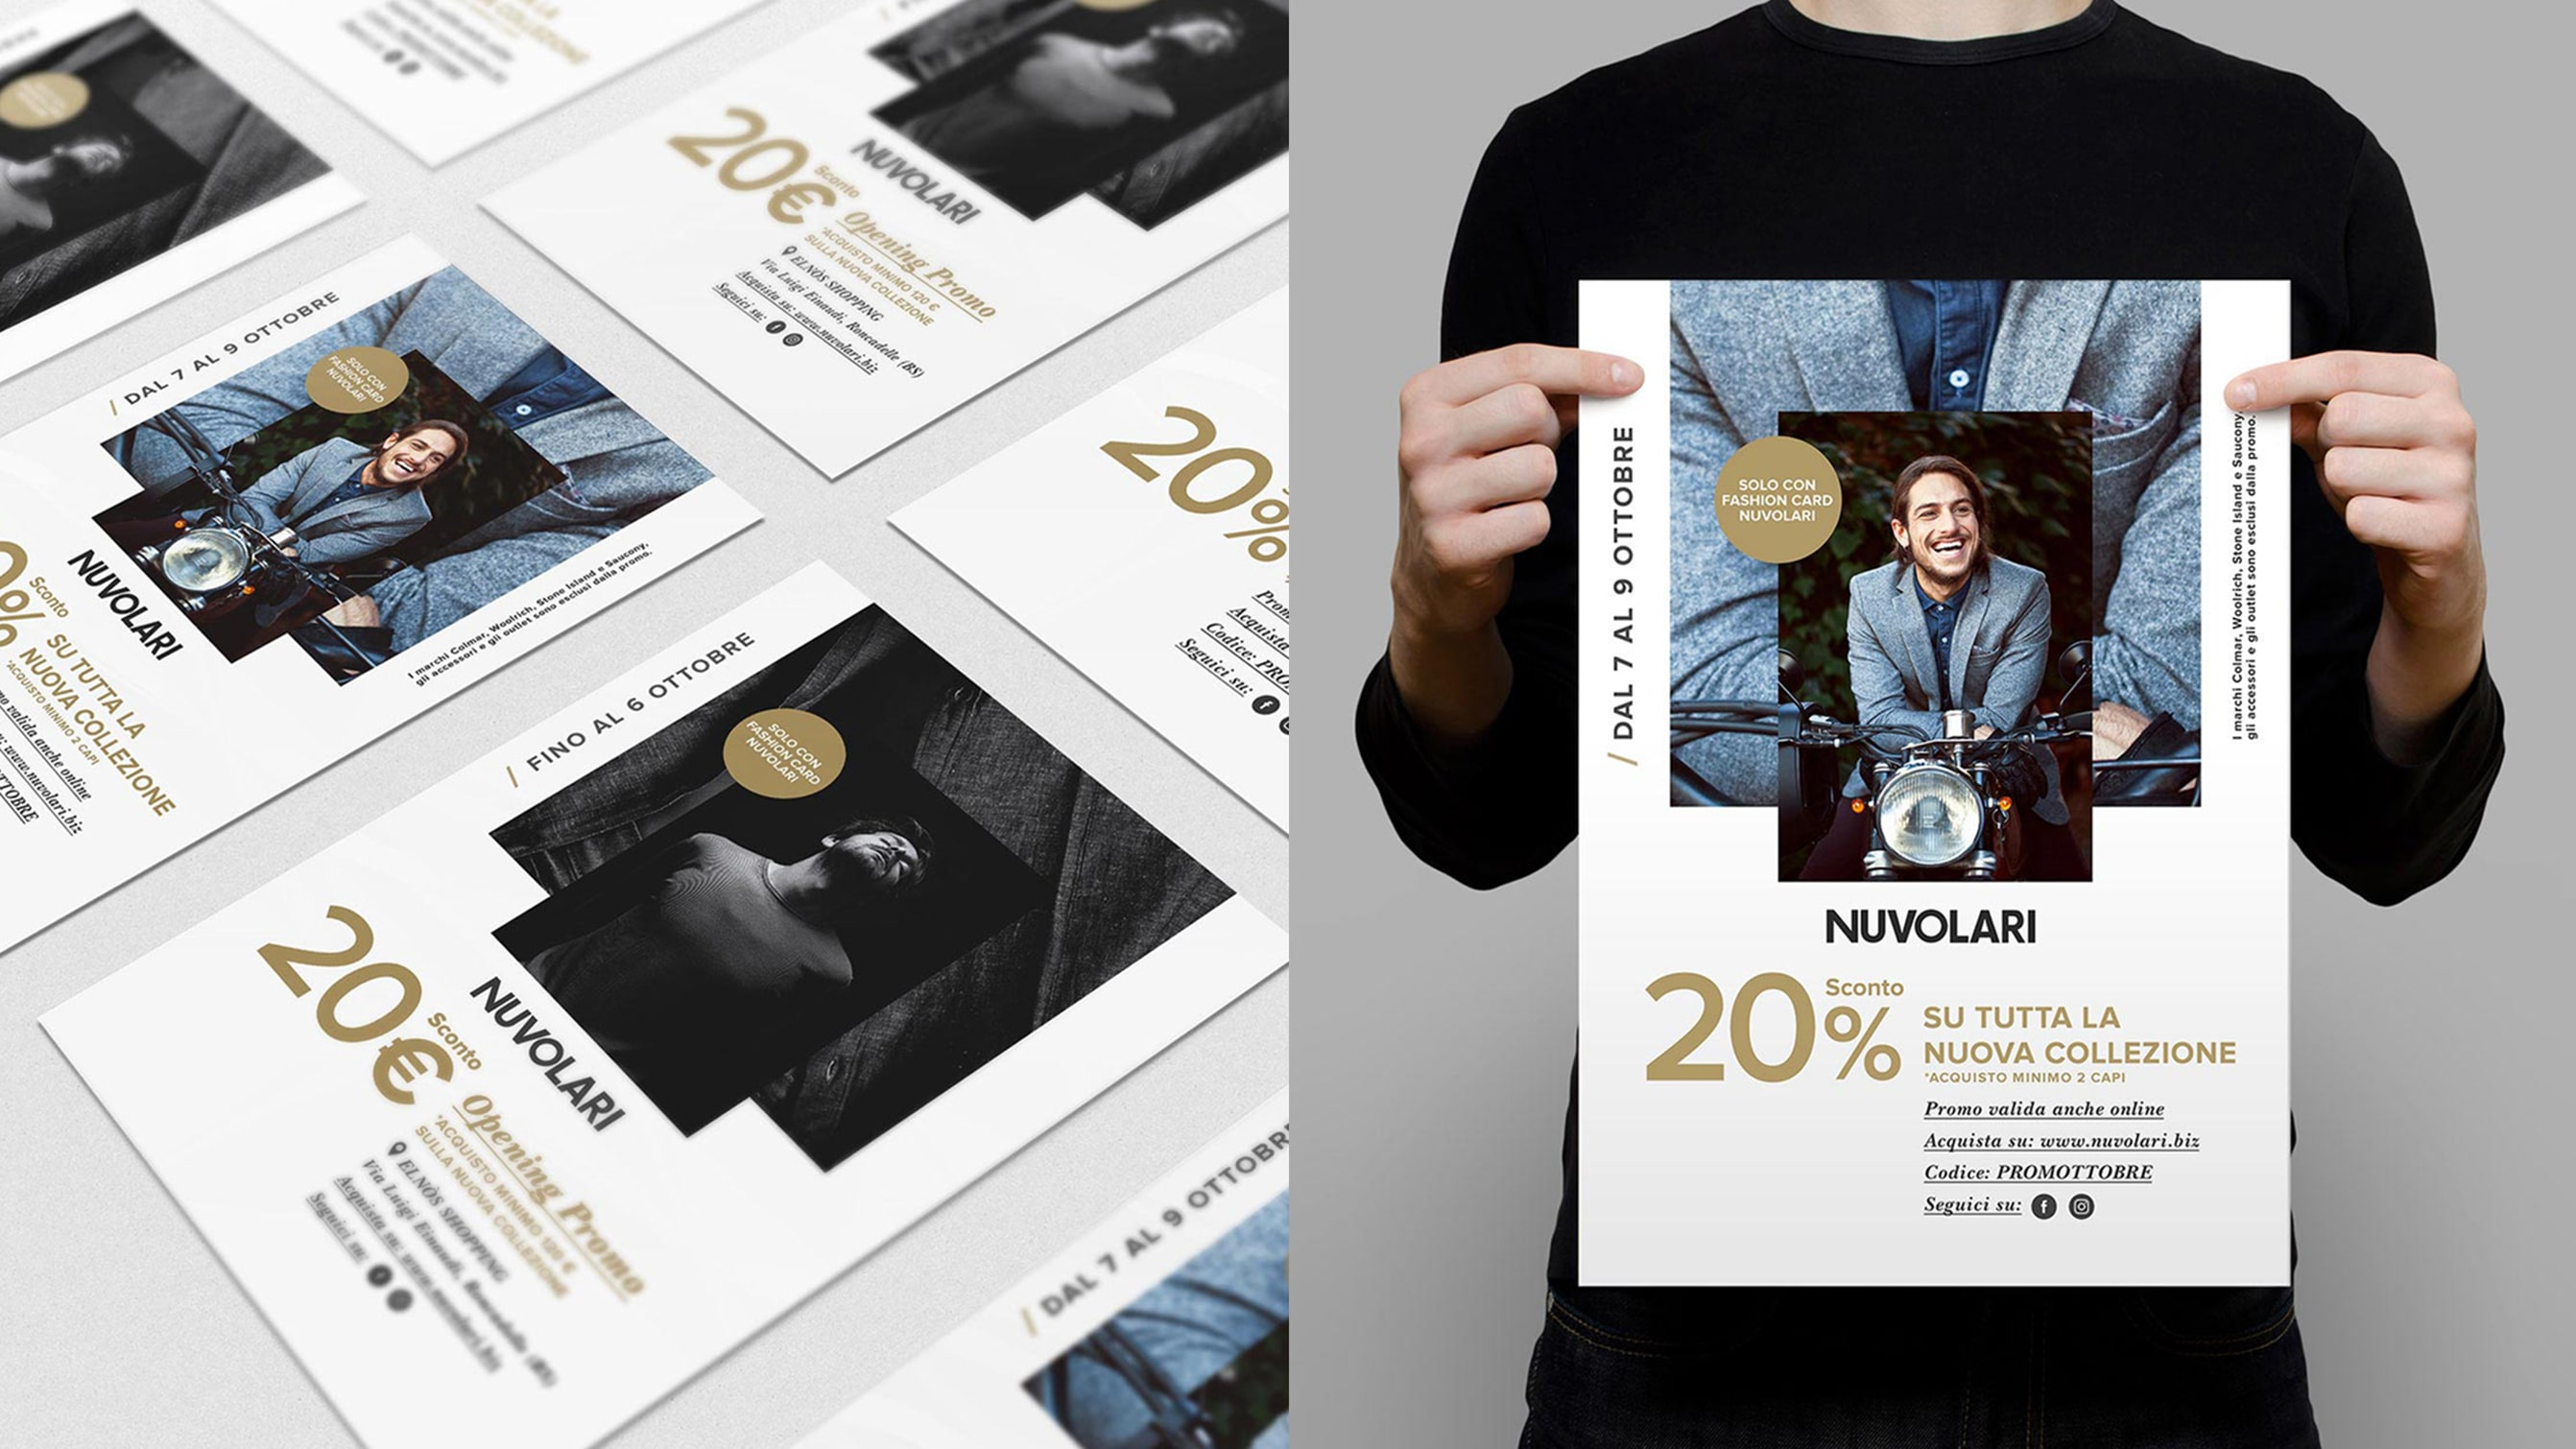 Luther Dsgn agency provided branding services and logo restyling for Nuvolari's fashion ecommerce websit